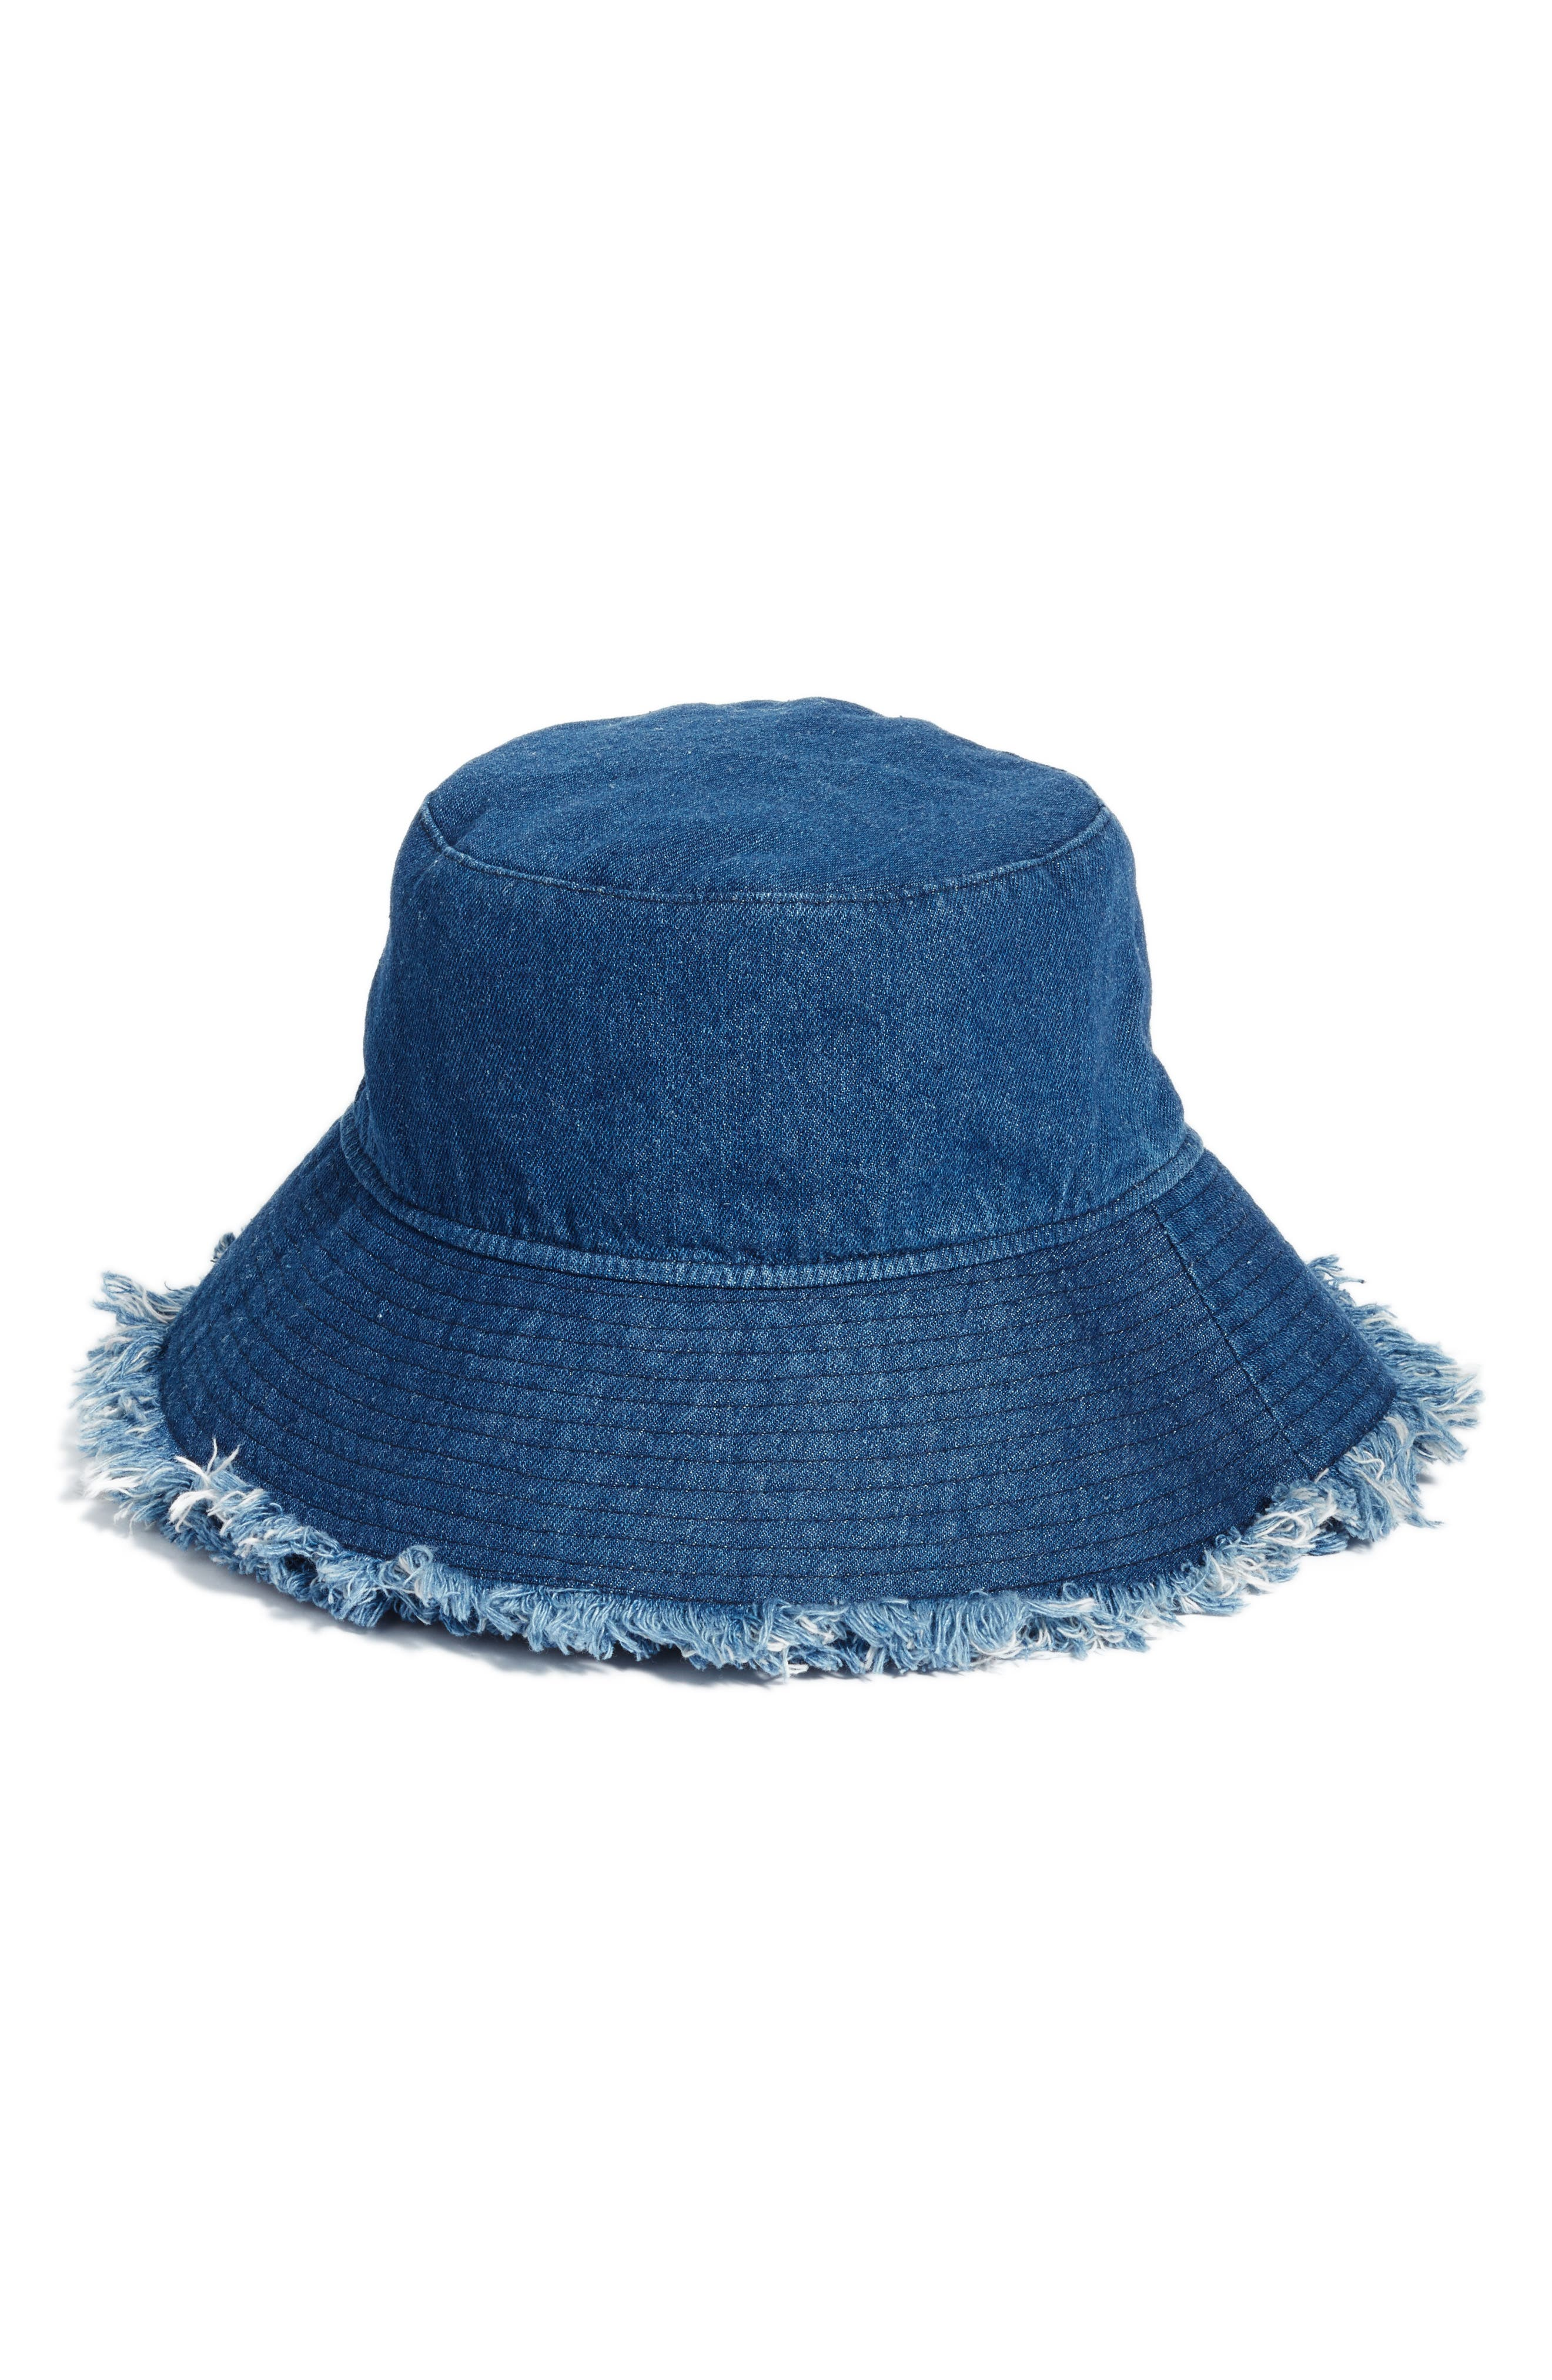 Denim Bucket Hat,                             Main thumbnail 1, color,                             410